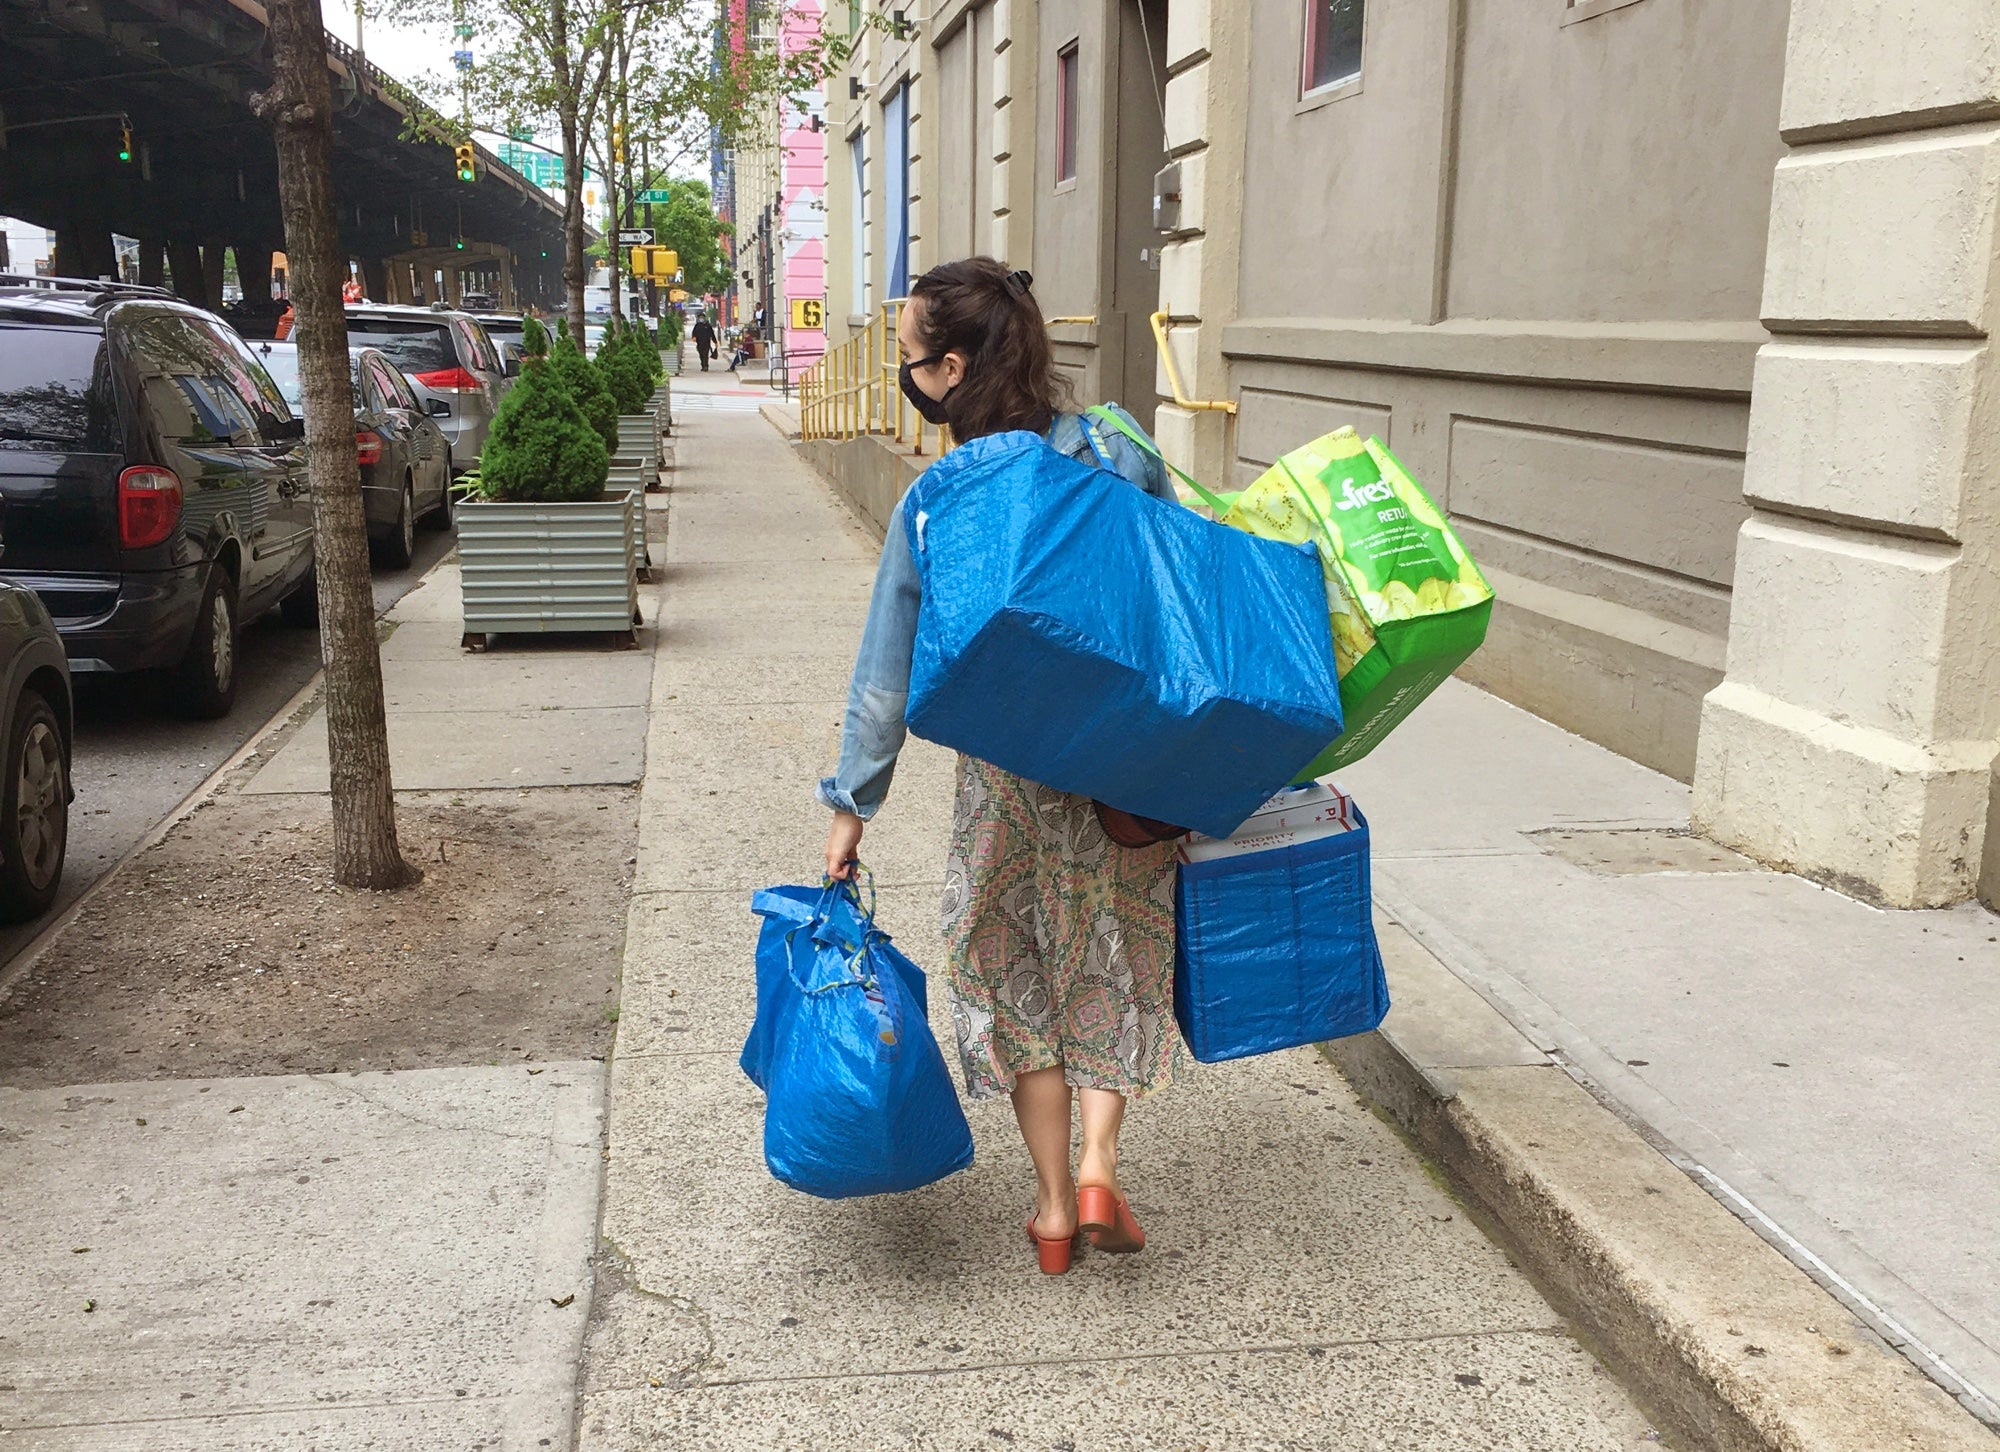 A woman carries large IKEA bags filled with vintage clothing while walking down a sidewalk